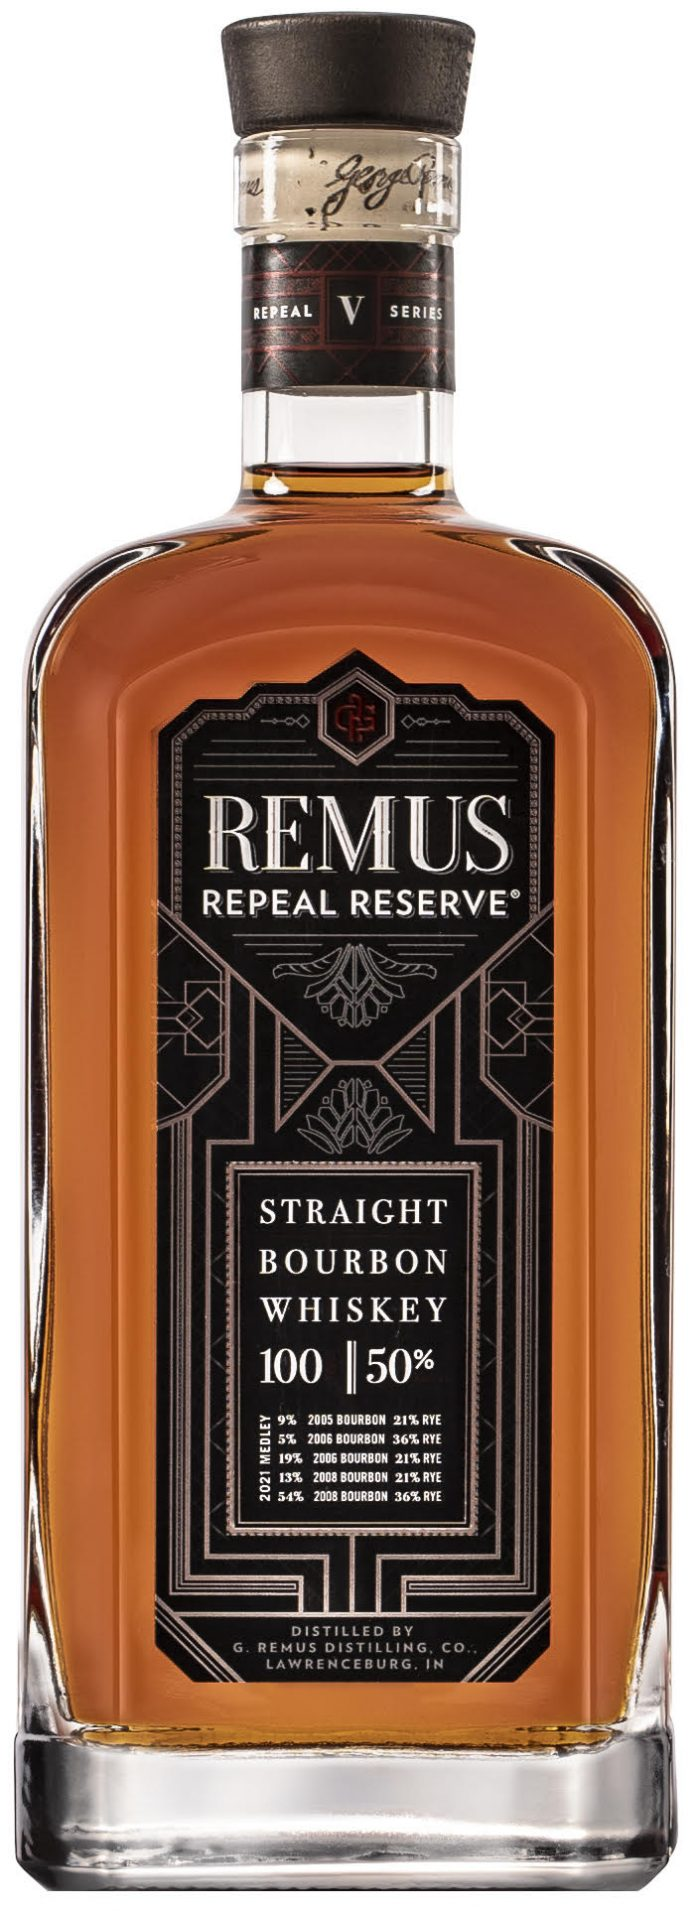 Remus Special Reserve